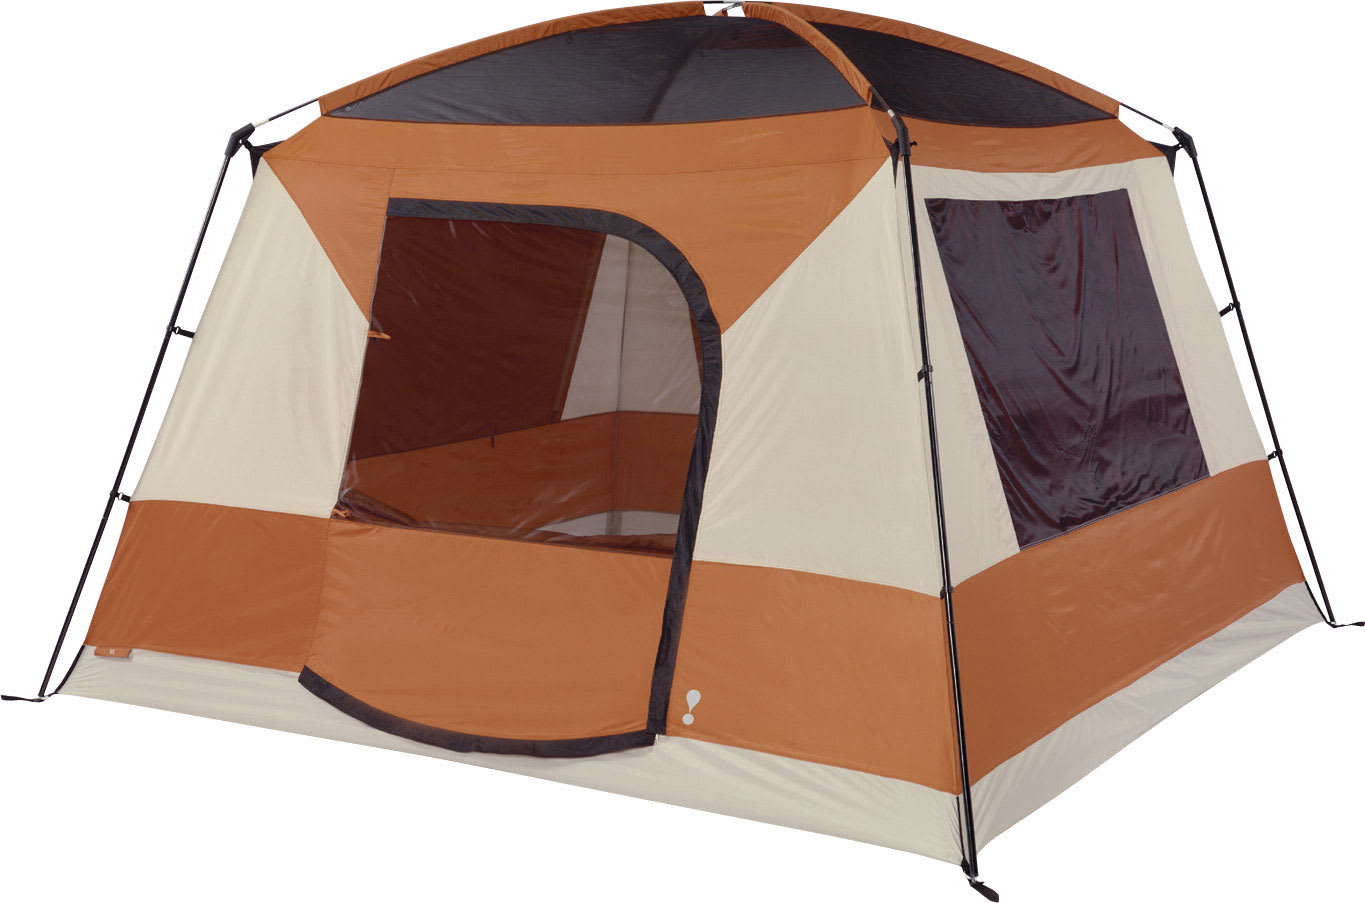 Eureka Copper Canyon 10 5-Person Tent - thumbnail 2  sc 1 st  The House & On Sale Eureka Copper Canyon 10 5-Person Tent up to 70% off